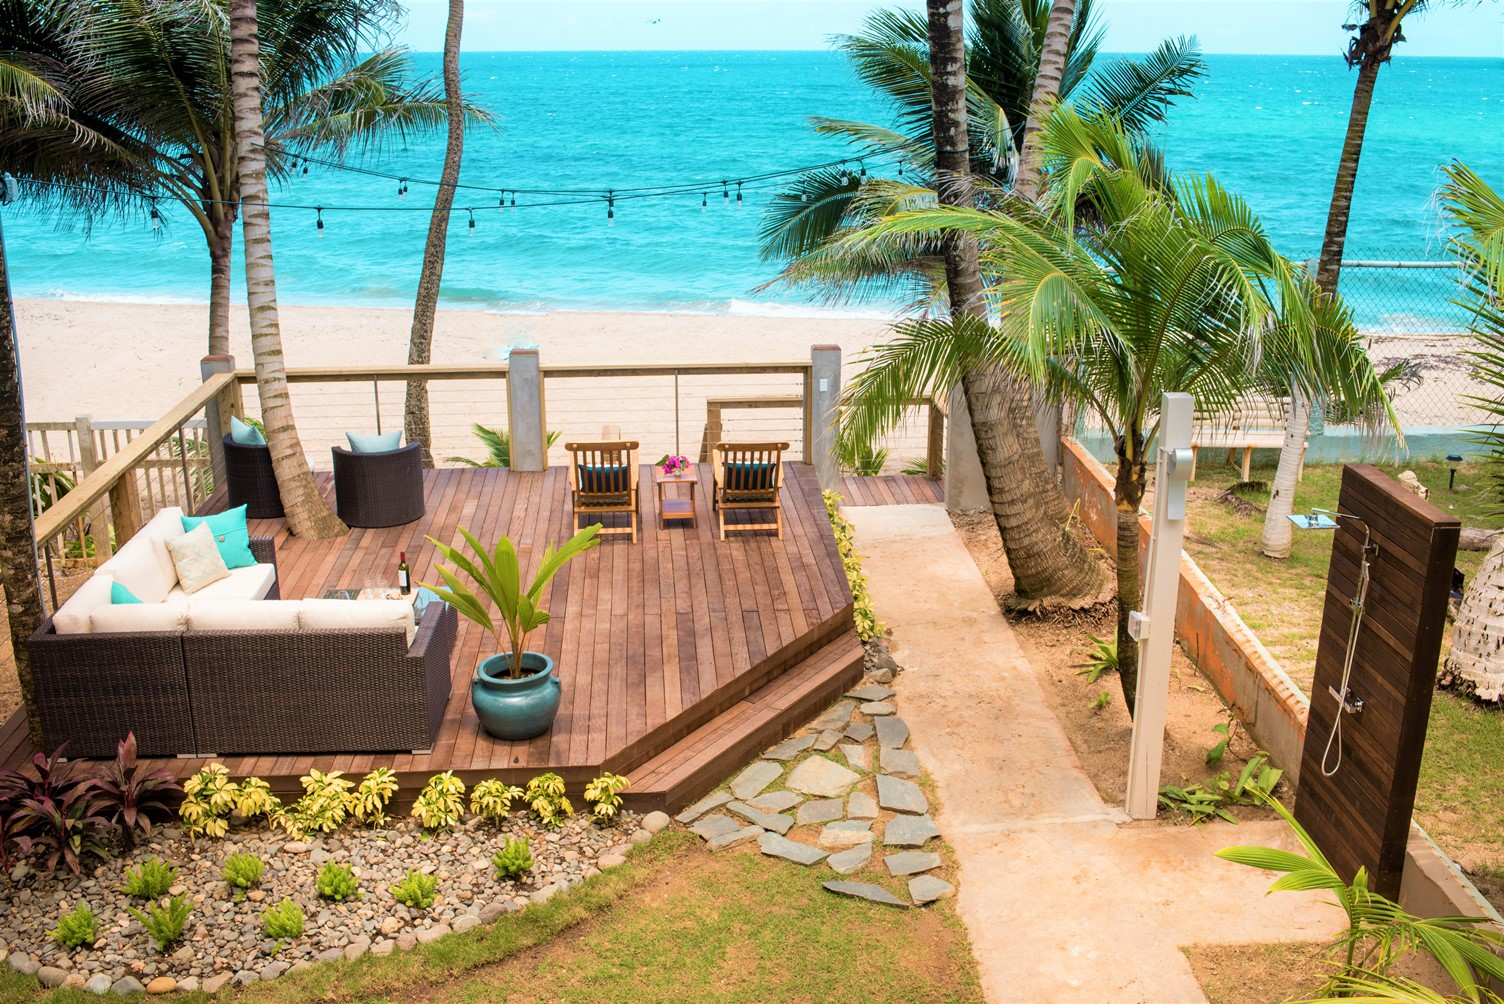 Bonnel_Sandy_Beach_House_Rincon_Images-17-b